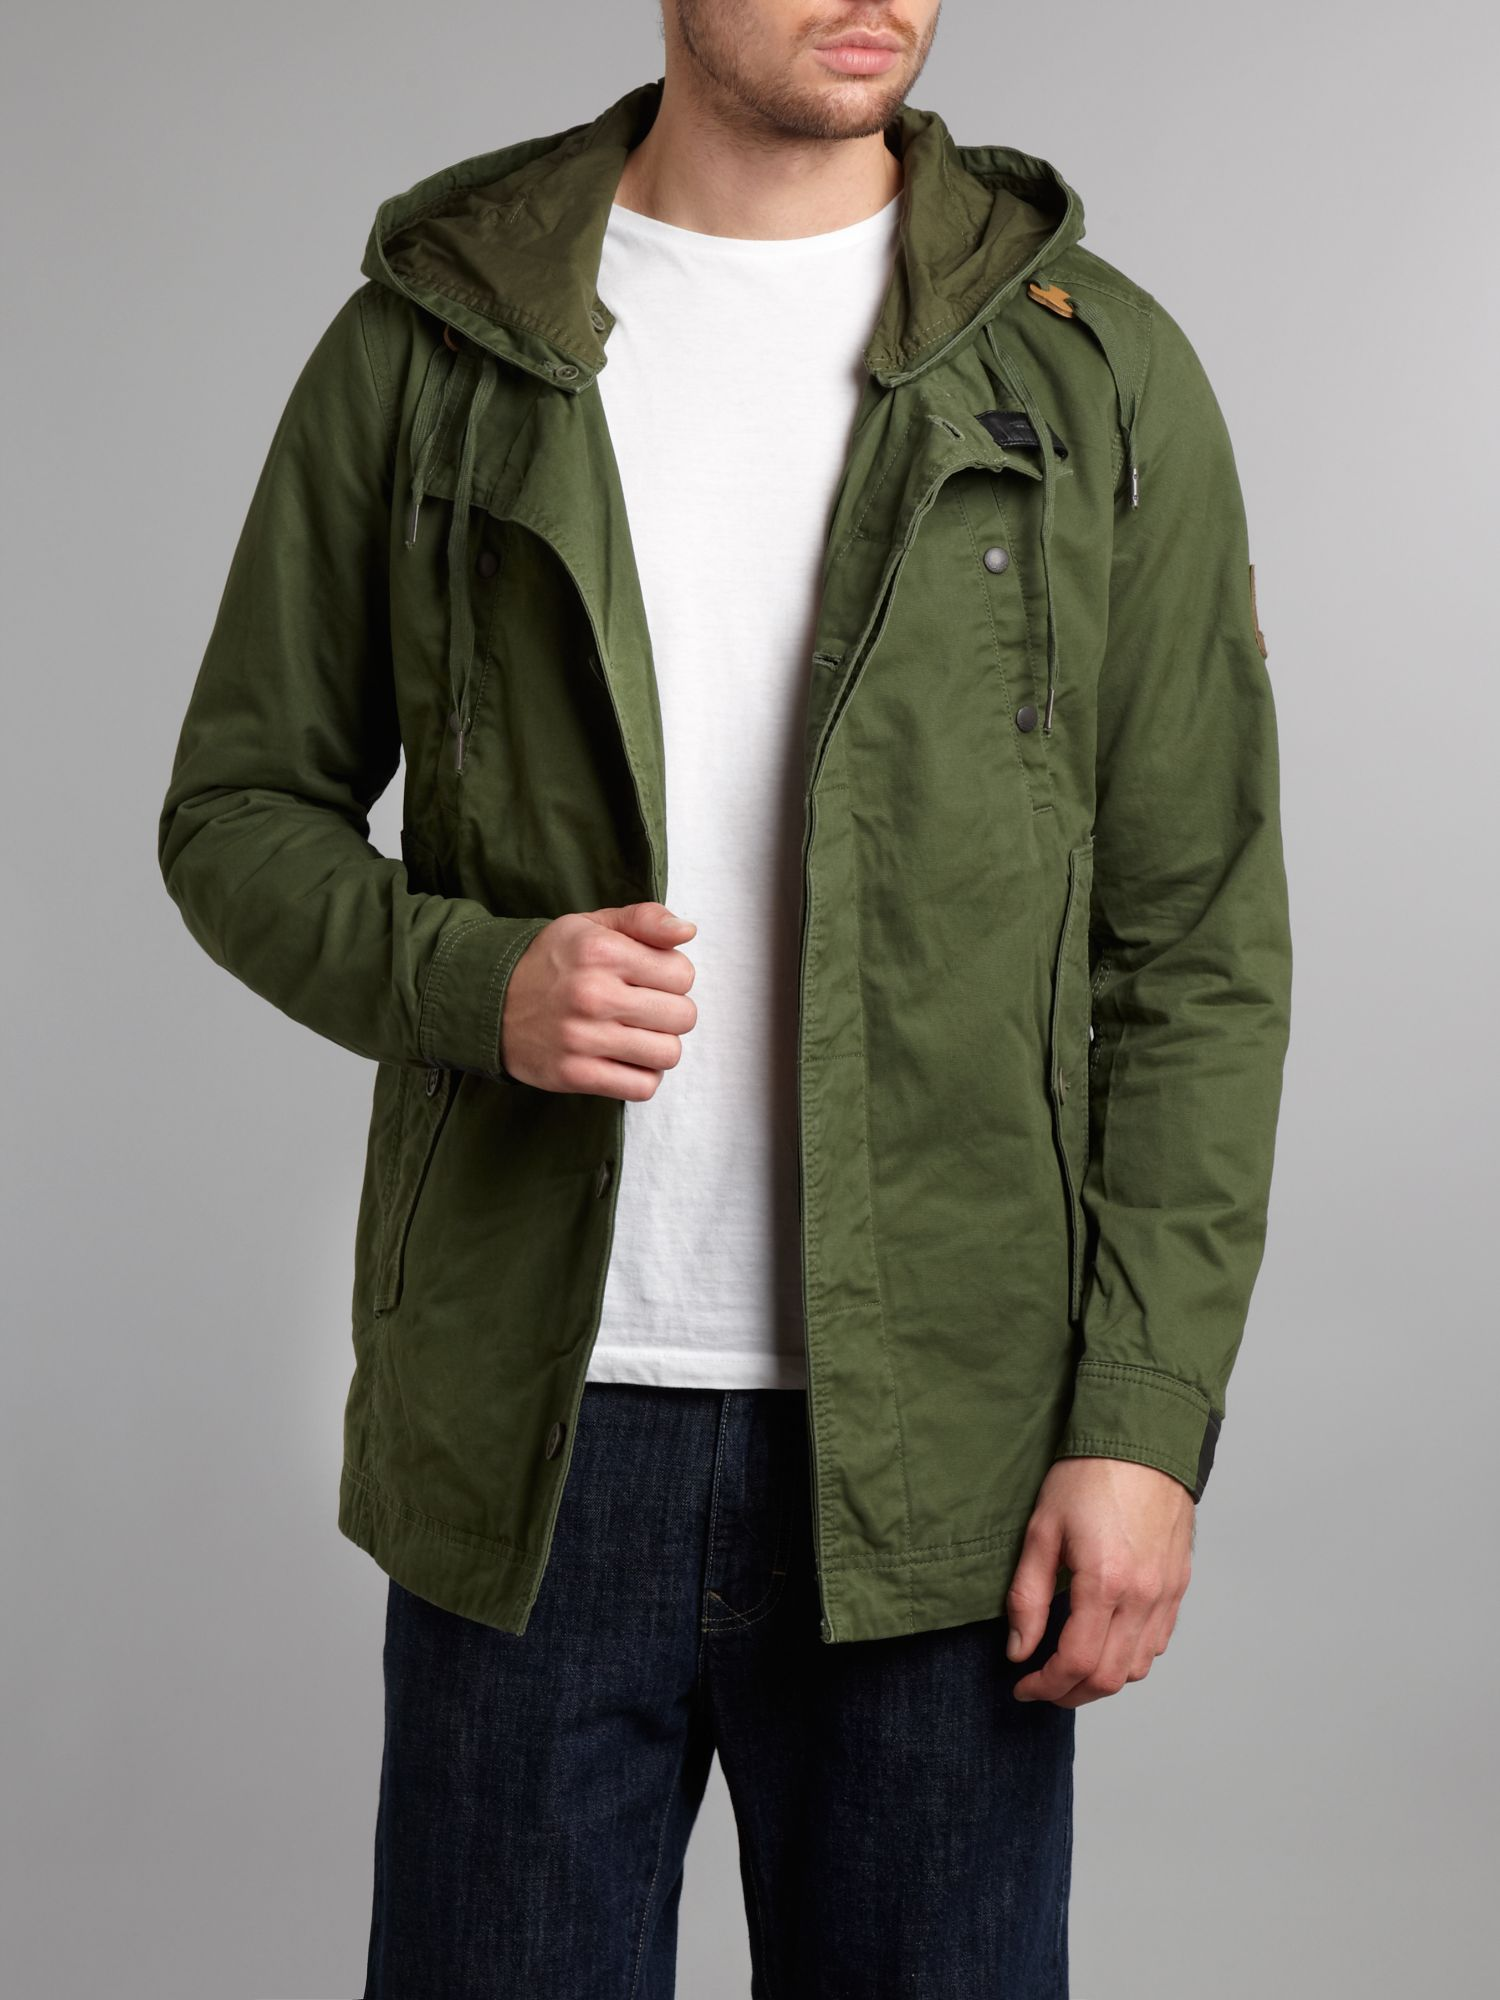 Green Parka Coat Men - JacketIn